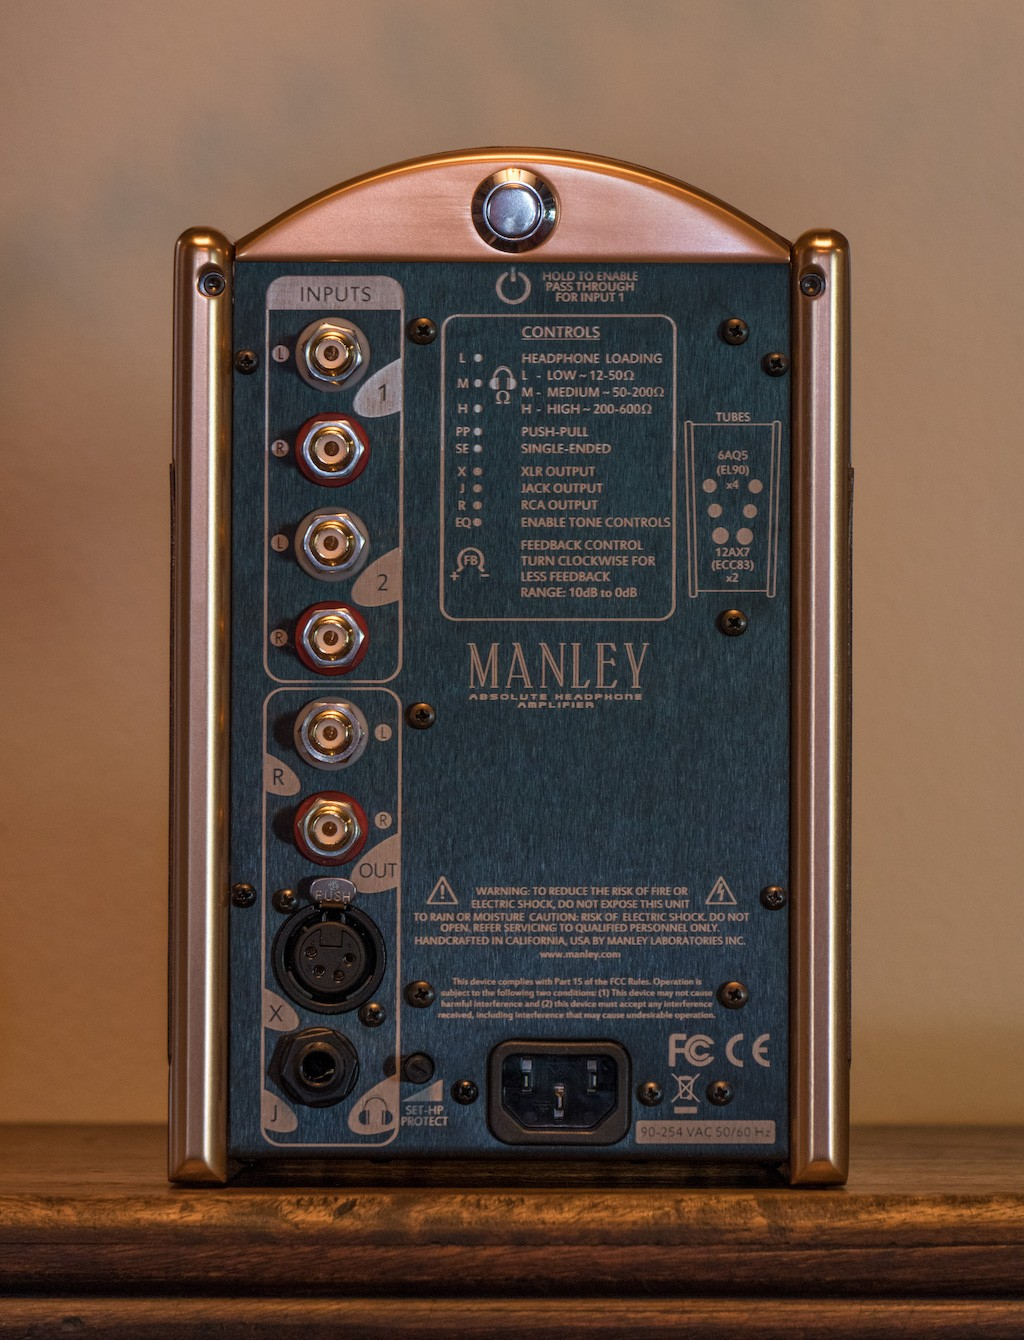 Manley_Absolute-headphone-Amplifier_4.jpg